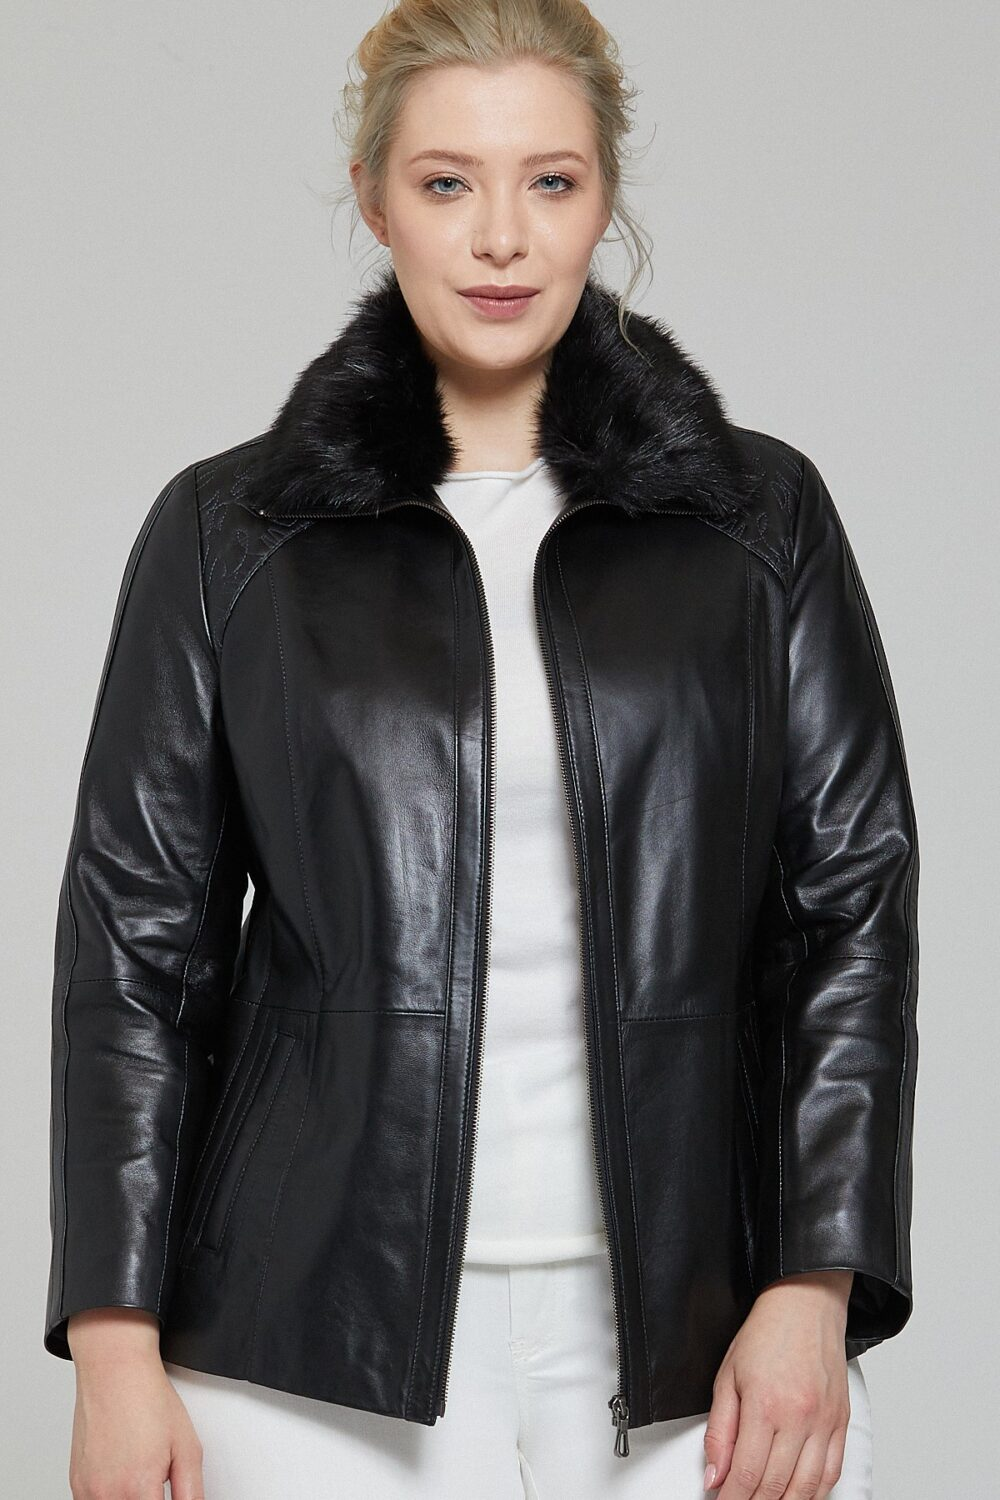 Genuine Leather Jacket Plus Size